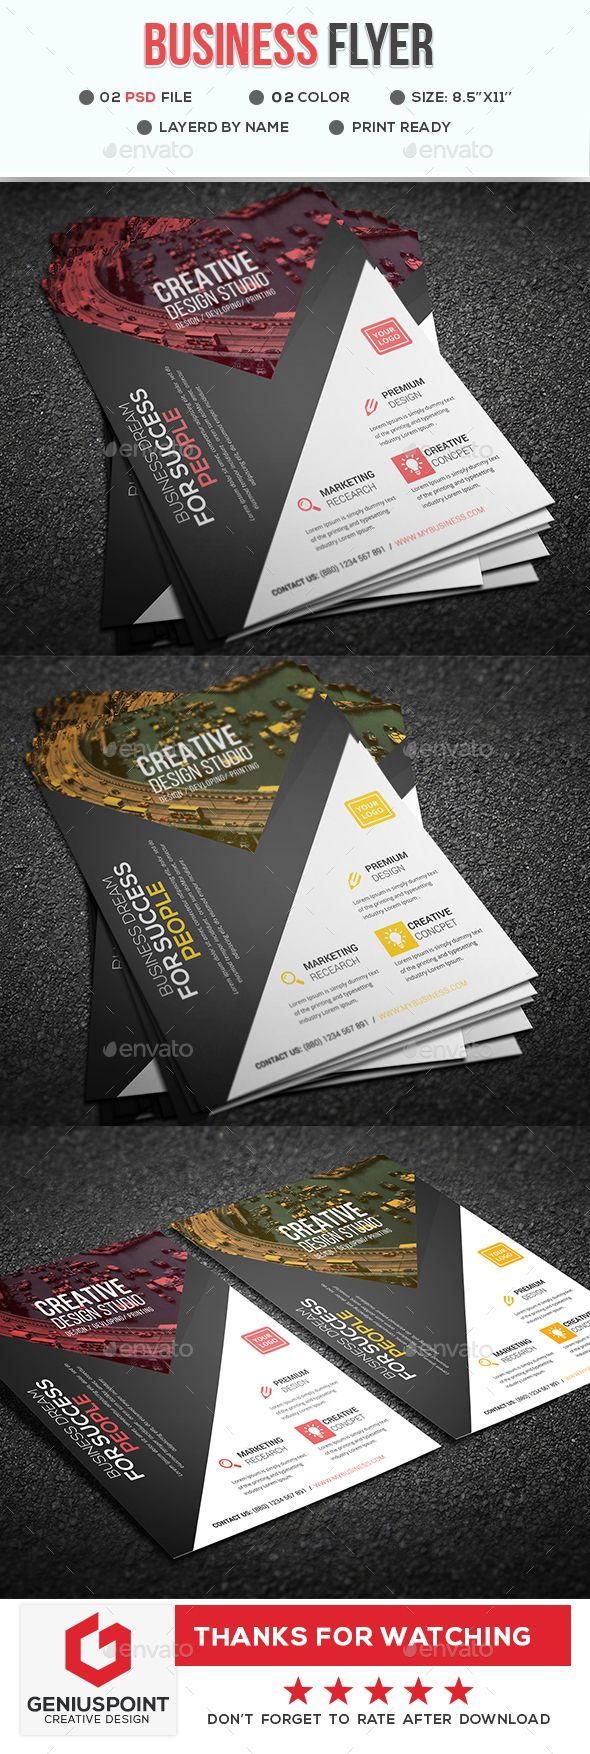 Business Flyer | Flyer printing, Business flyers and Print templates